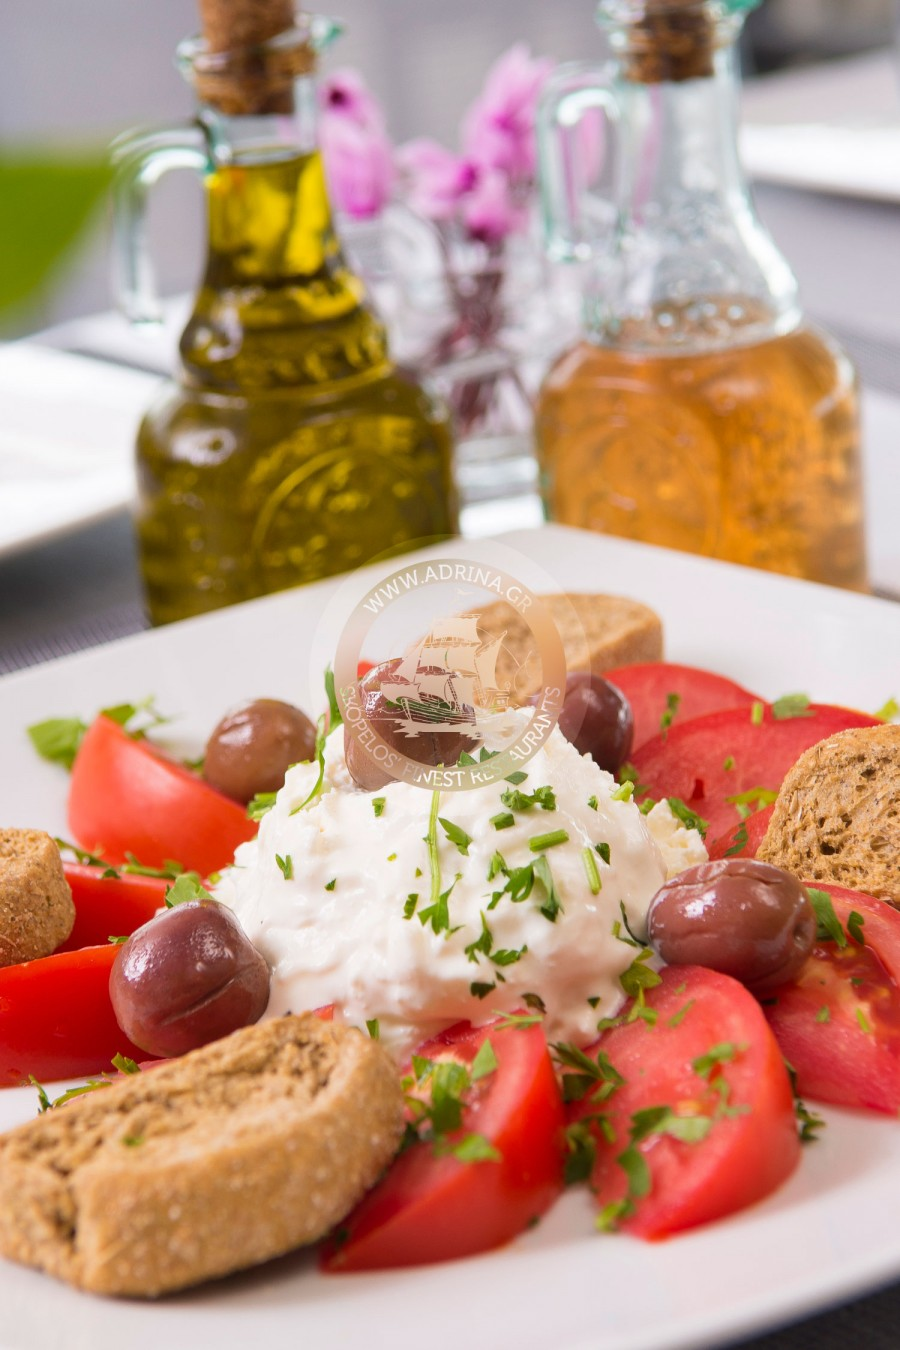 Salad with dakos, olives and katiki cheese